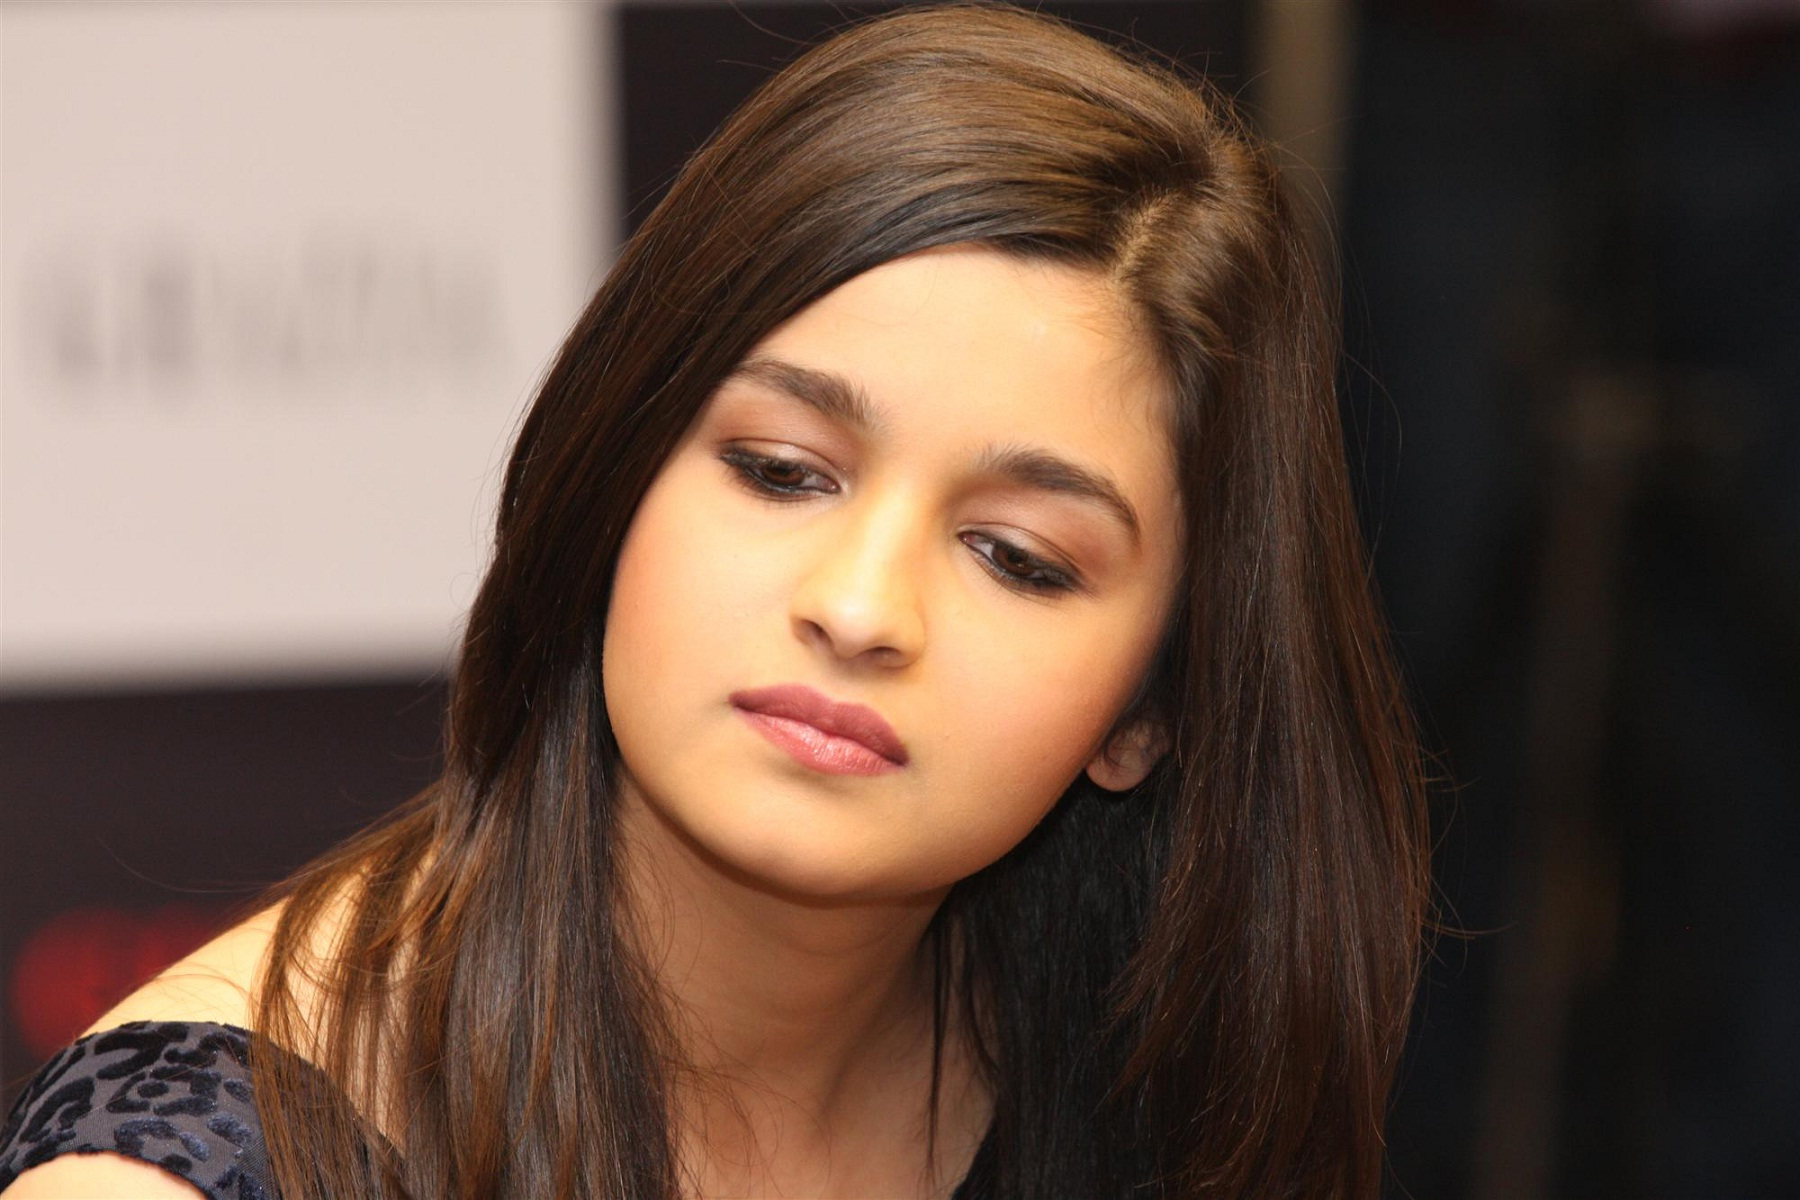 Download Alia Bhatt Free Background Laptop Hd Pictures